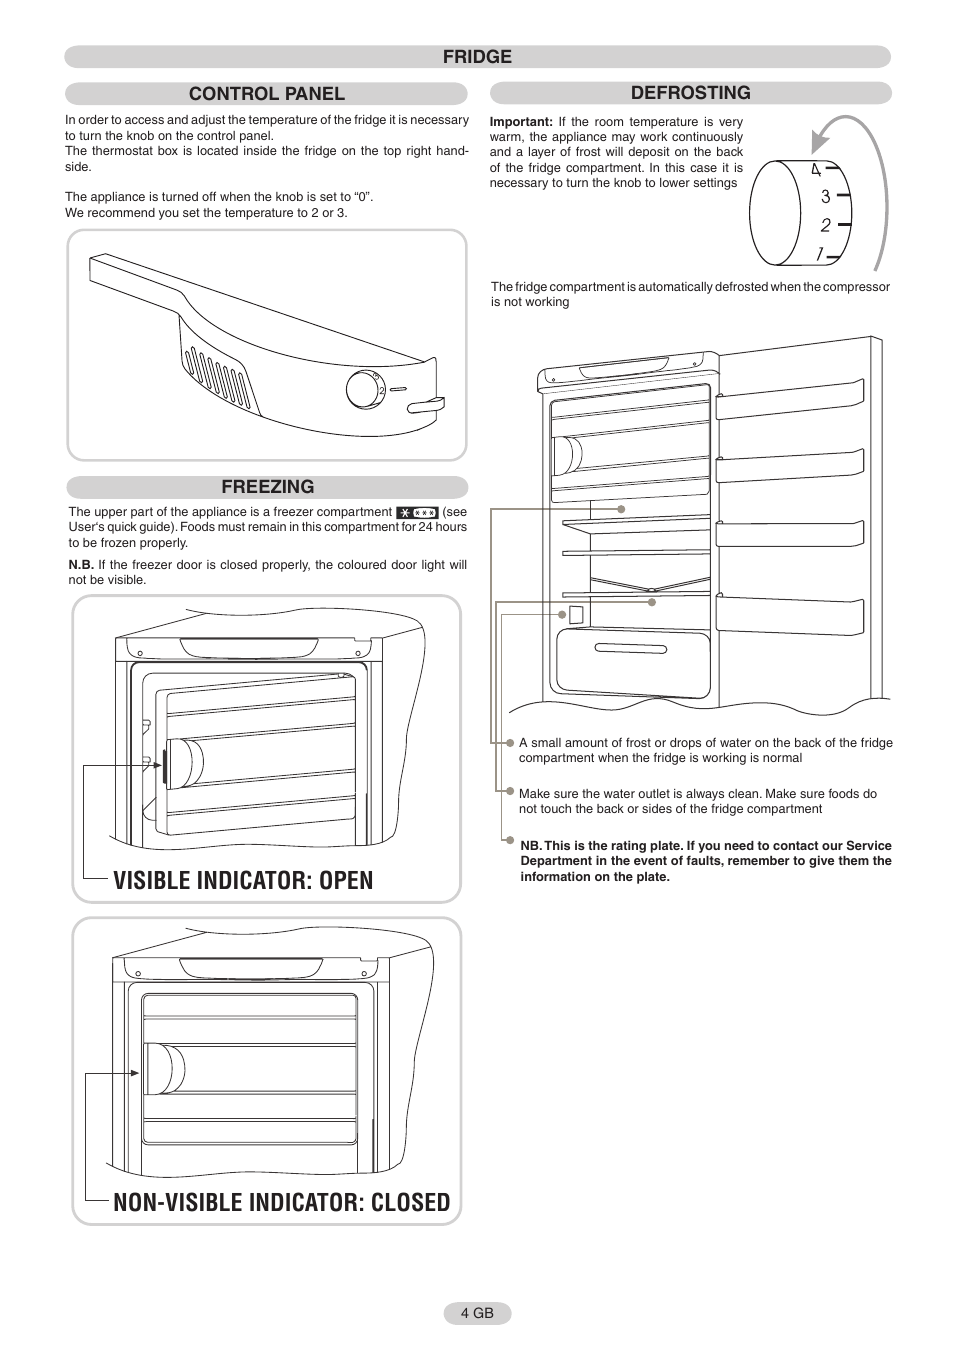 medium resolution of fridge diagram how it work